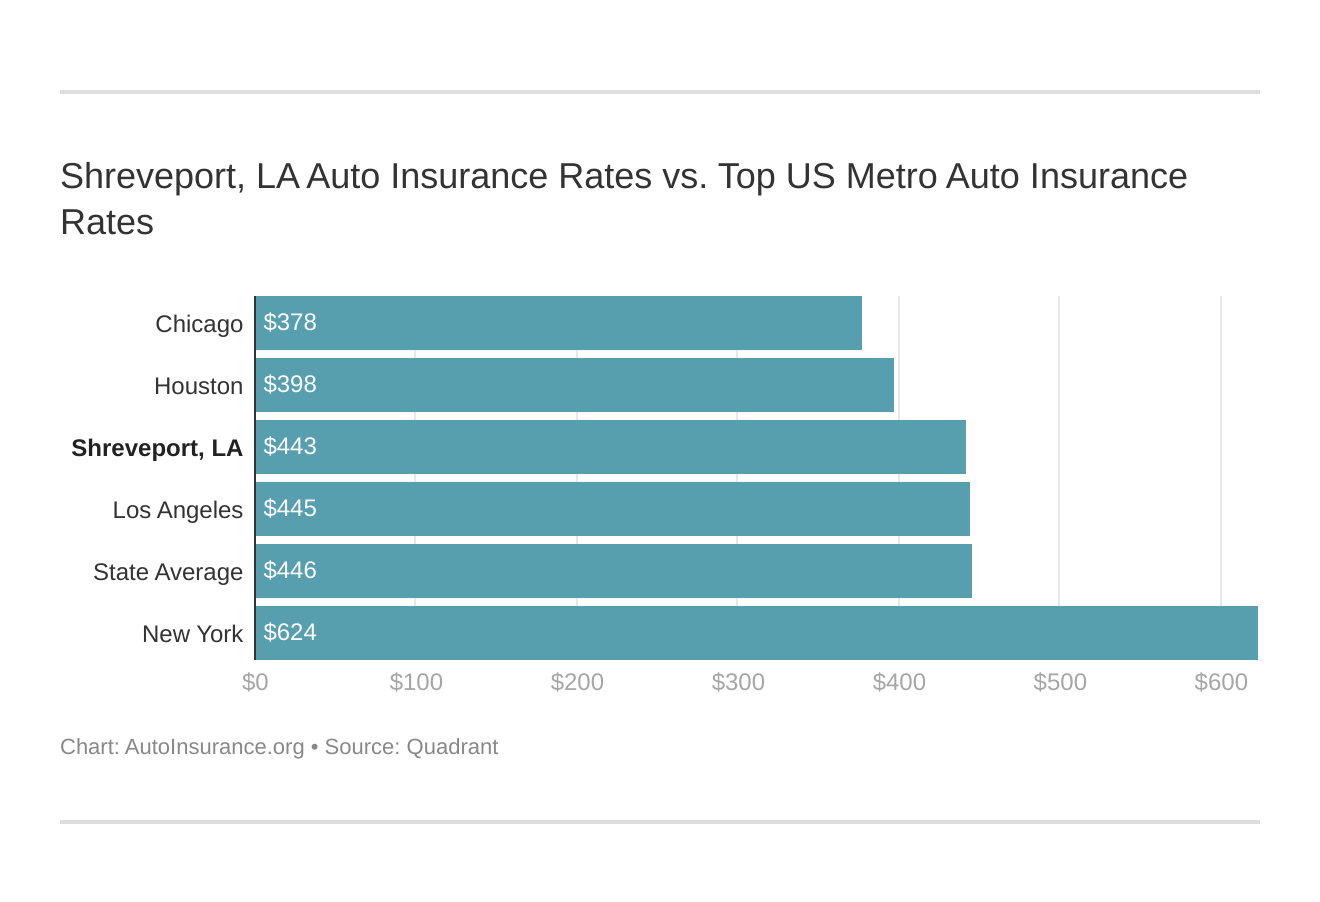 Shreveport, LA Auto Insurance Rates vs. Top US Metro Auto Insurance Rates